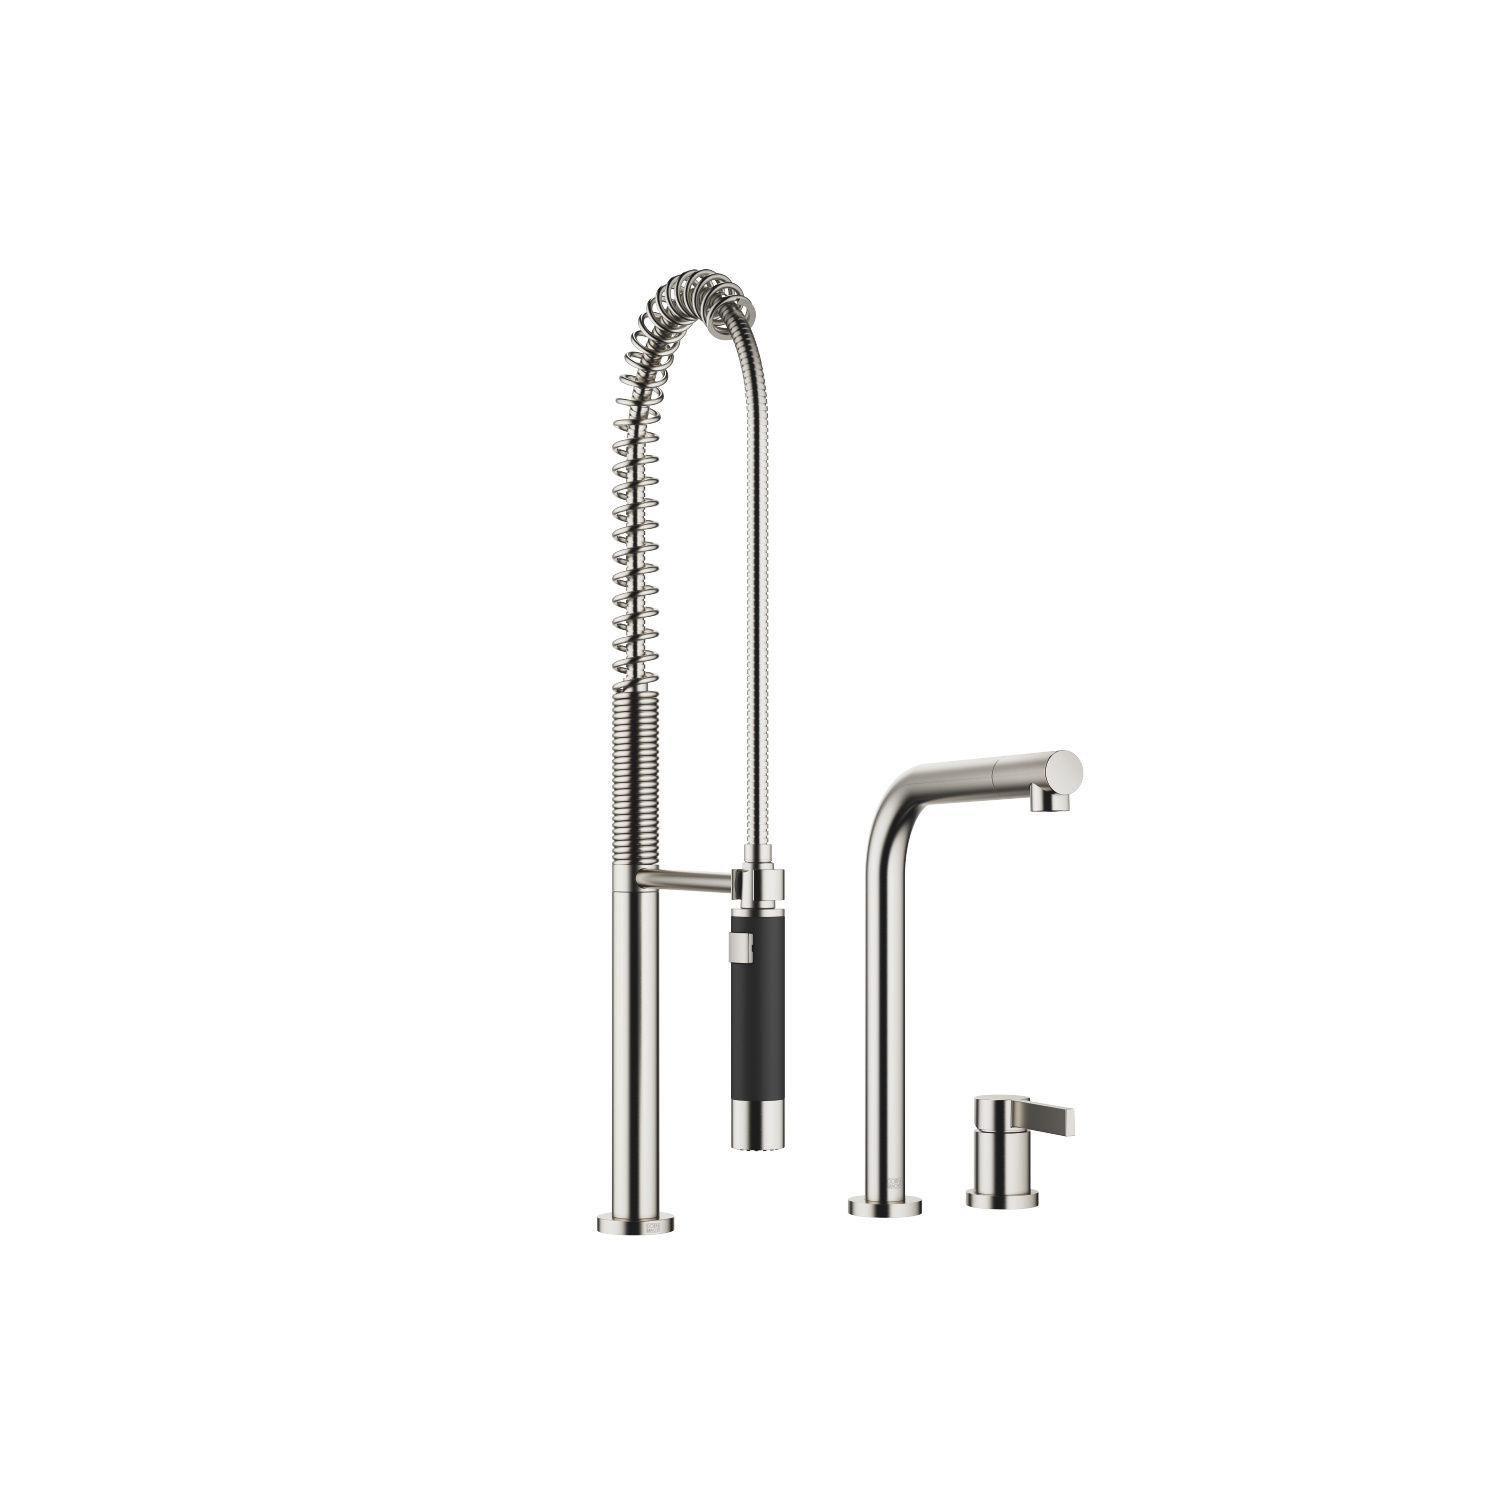 Two-hole mixer with individual rosettes with profi spray set - platinum matt